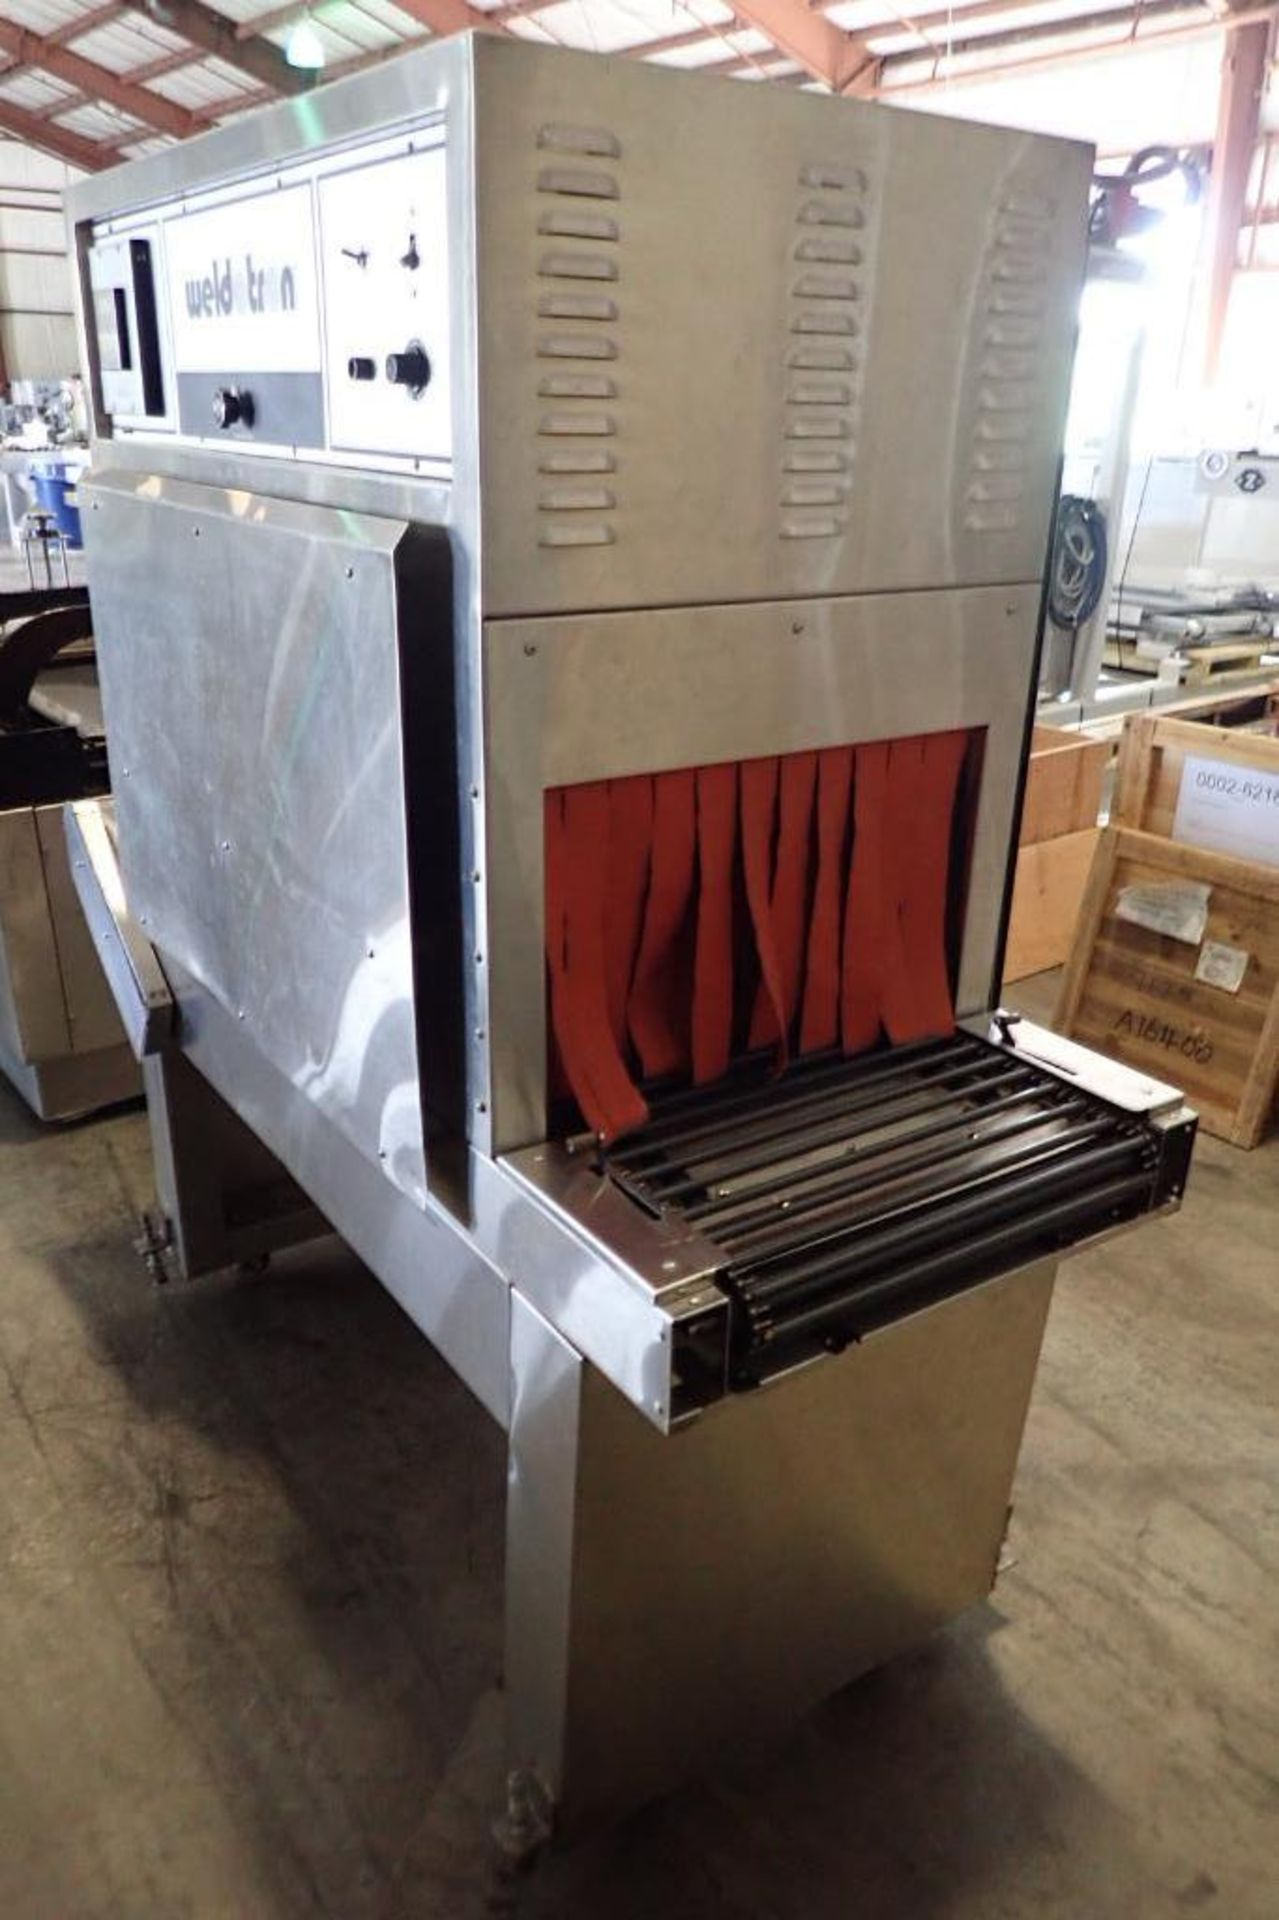 Lot 45 - Weldotron heat shrink tunnel, tunnel 46 in. long x 22 in. wide x 13 in. tall, rod belt conveyor 69